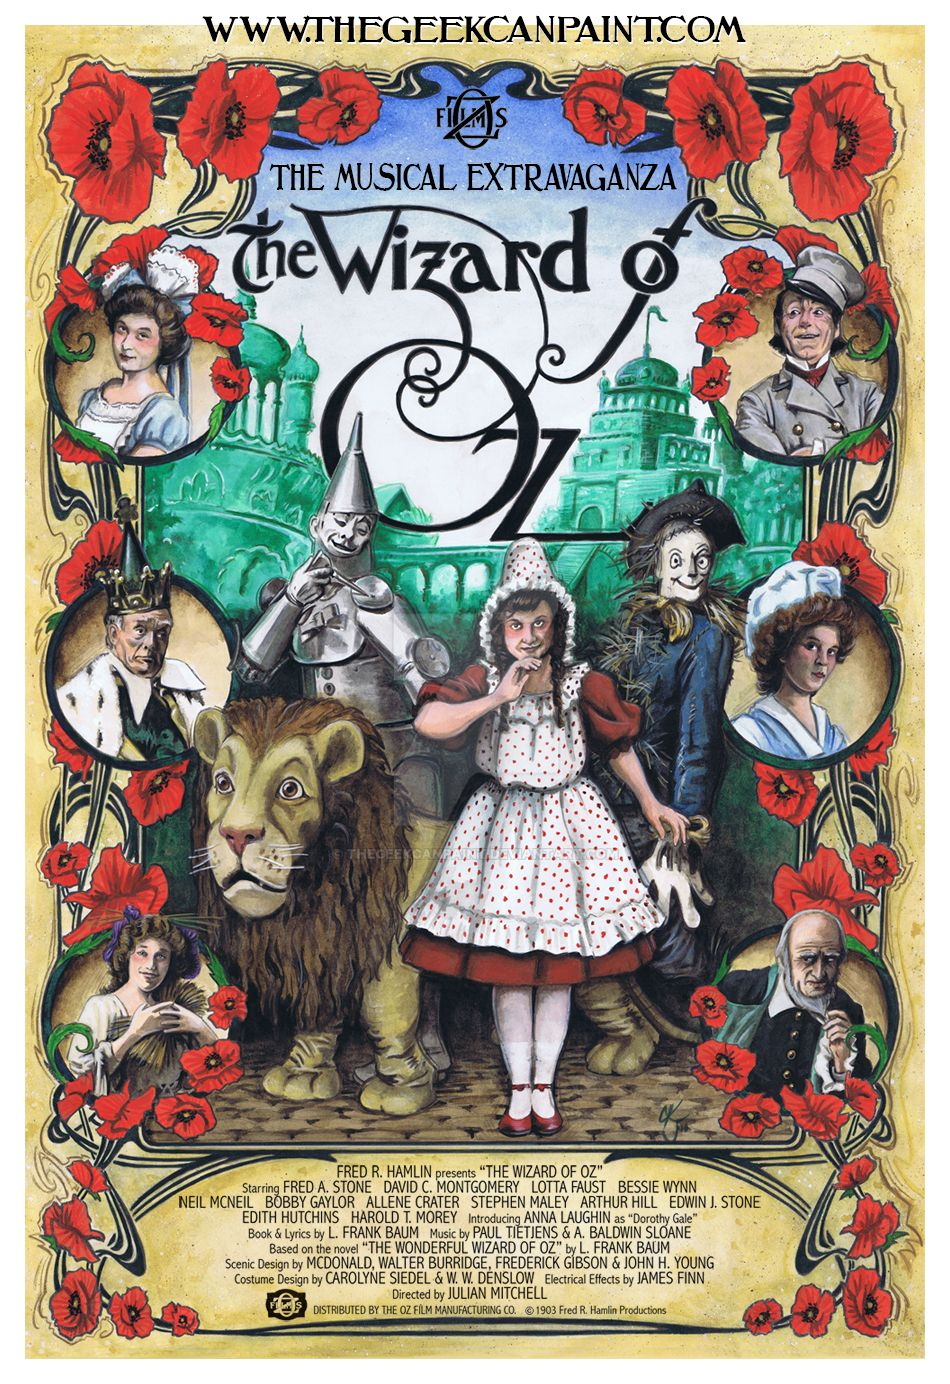 lighting and special effects of the wizard of oz Read this music and movies essay and over 88,000 other research documents mise-en-scene in the wizard of oz mise-en-scиne the placement of a prop or altering the way the light shines on a scene, however insignificant they may.